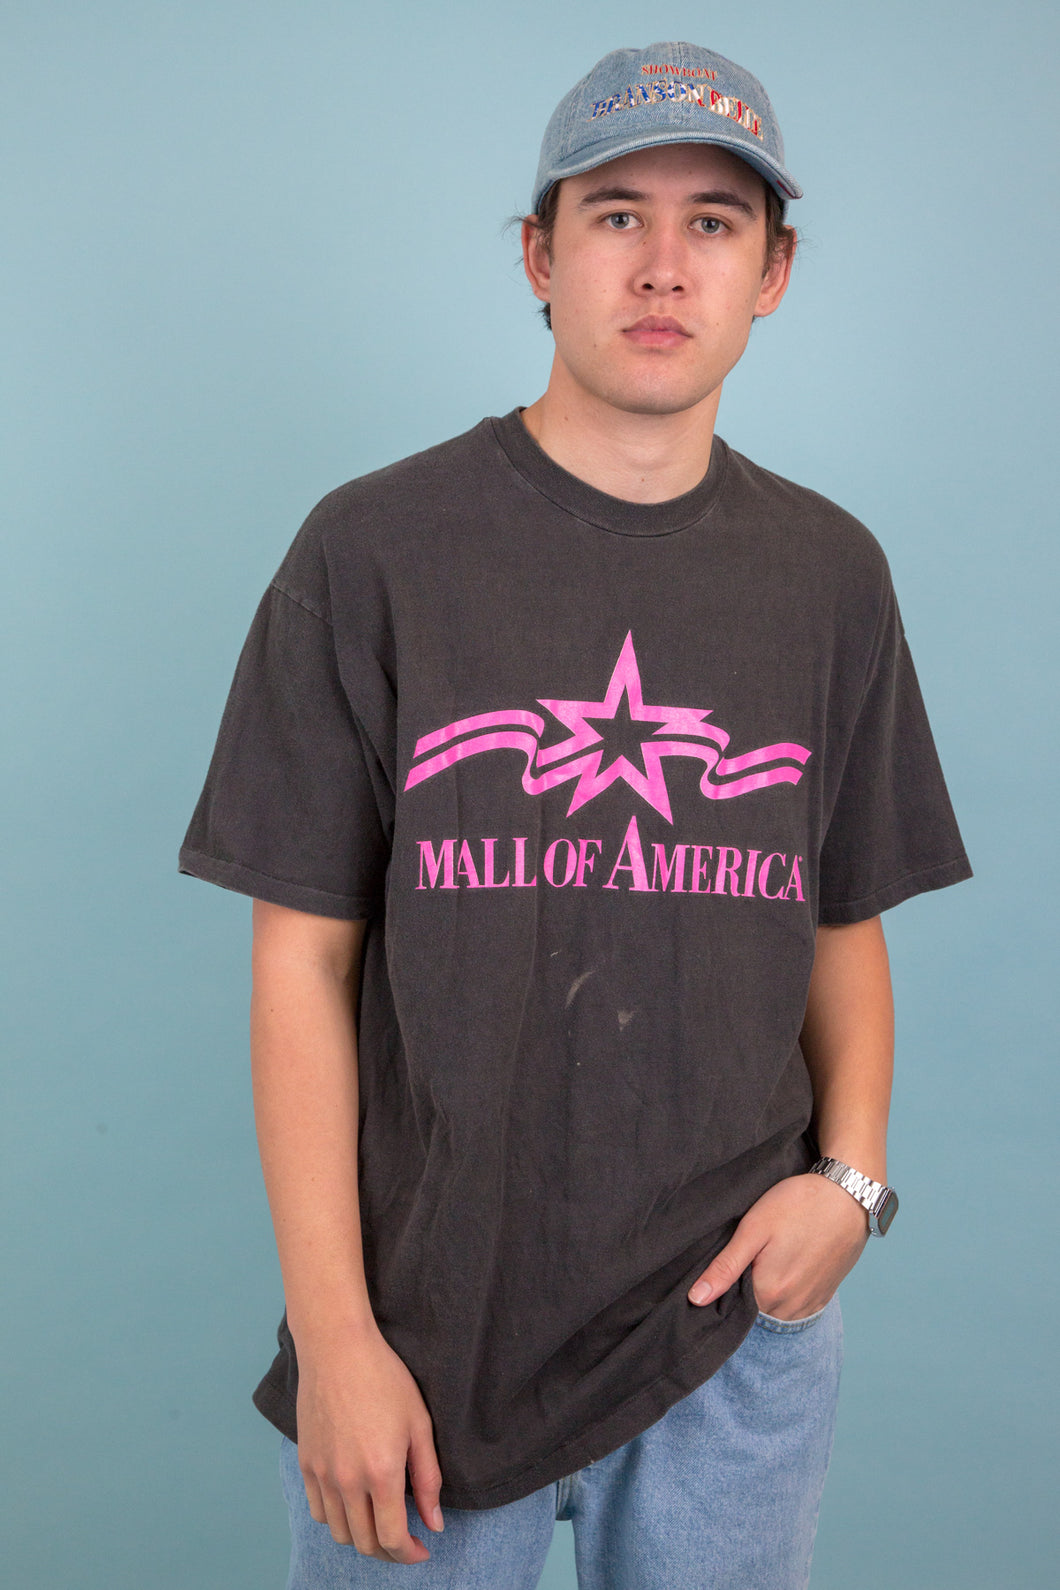 Mall of America Tee